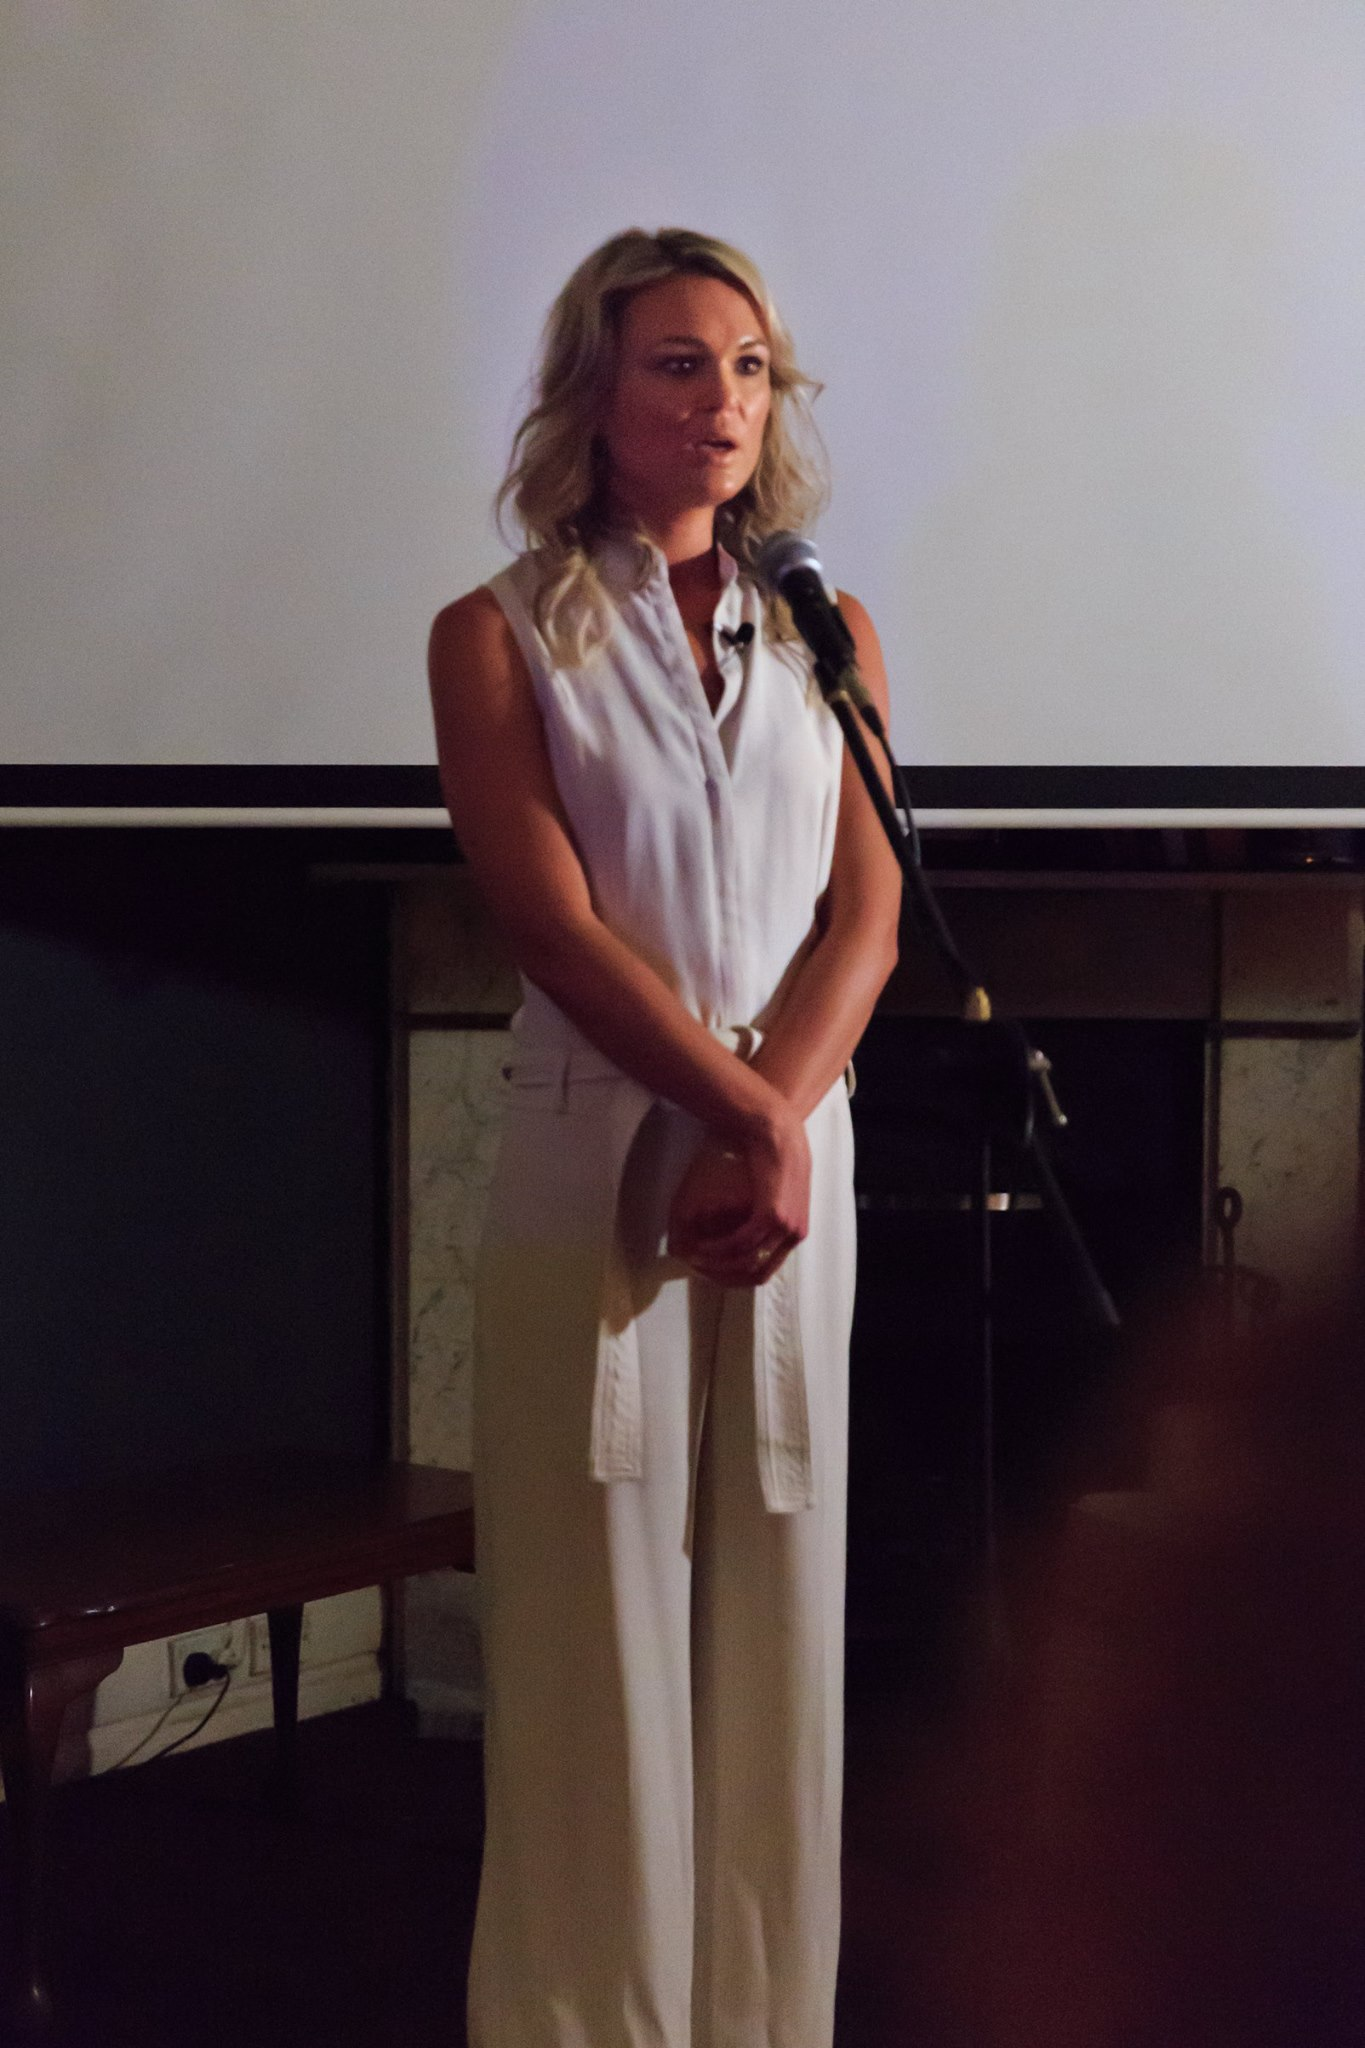 In action! Courageous speaker Lauren Croxford, sharing her amazingly courageous story, at our Mama Creatives Story Slam.